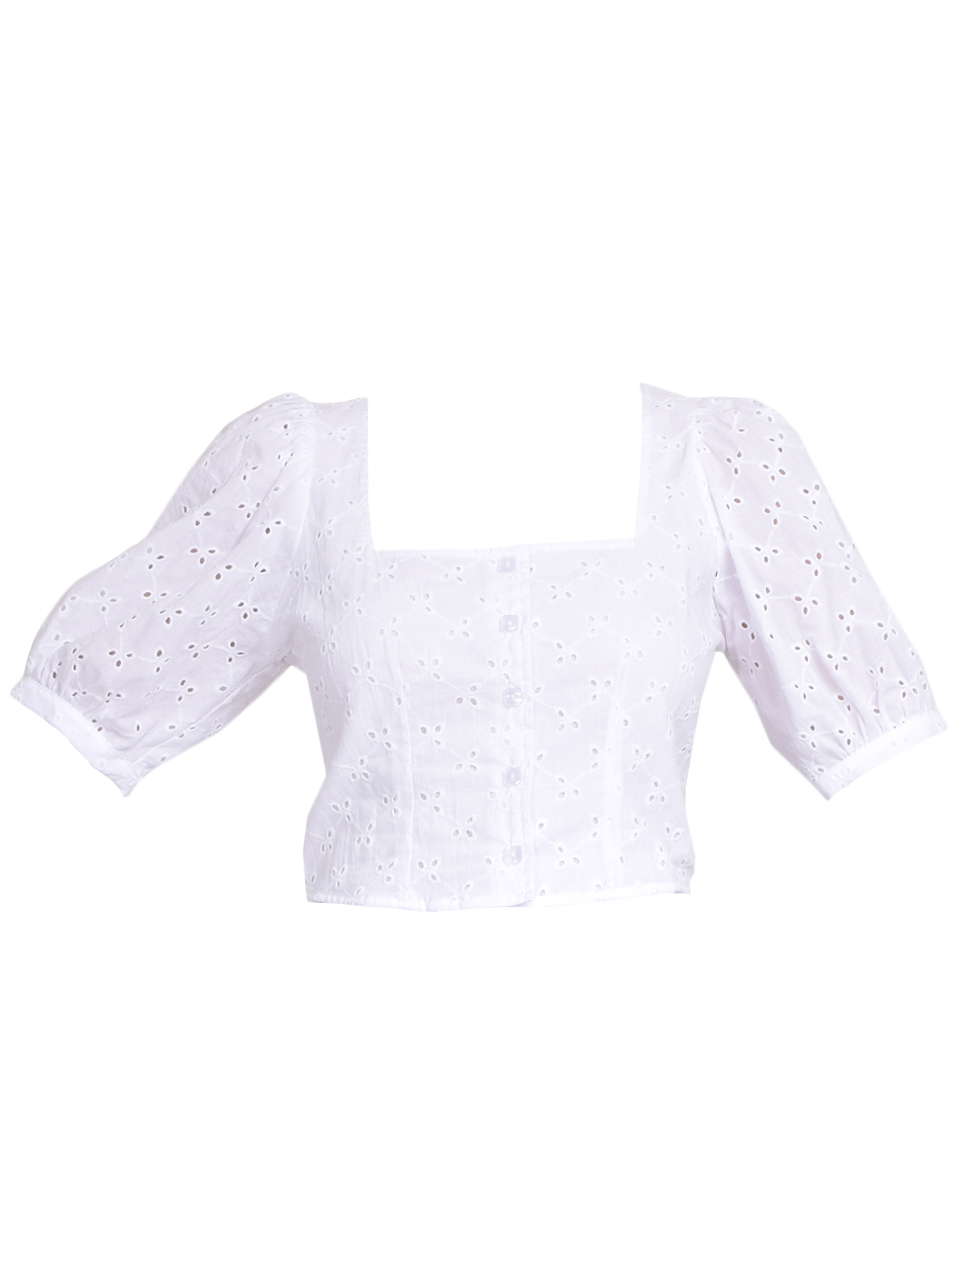 Rachel Pally Eyelet Kimmie Top in White Product Shot